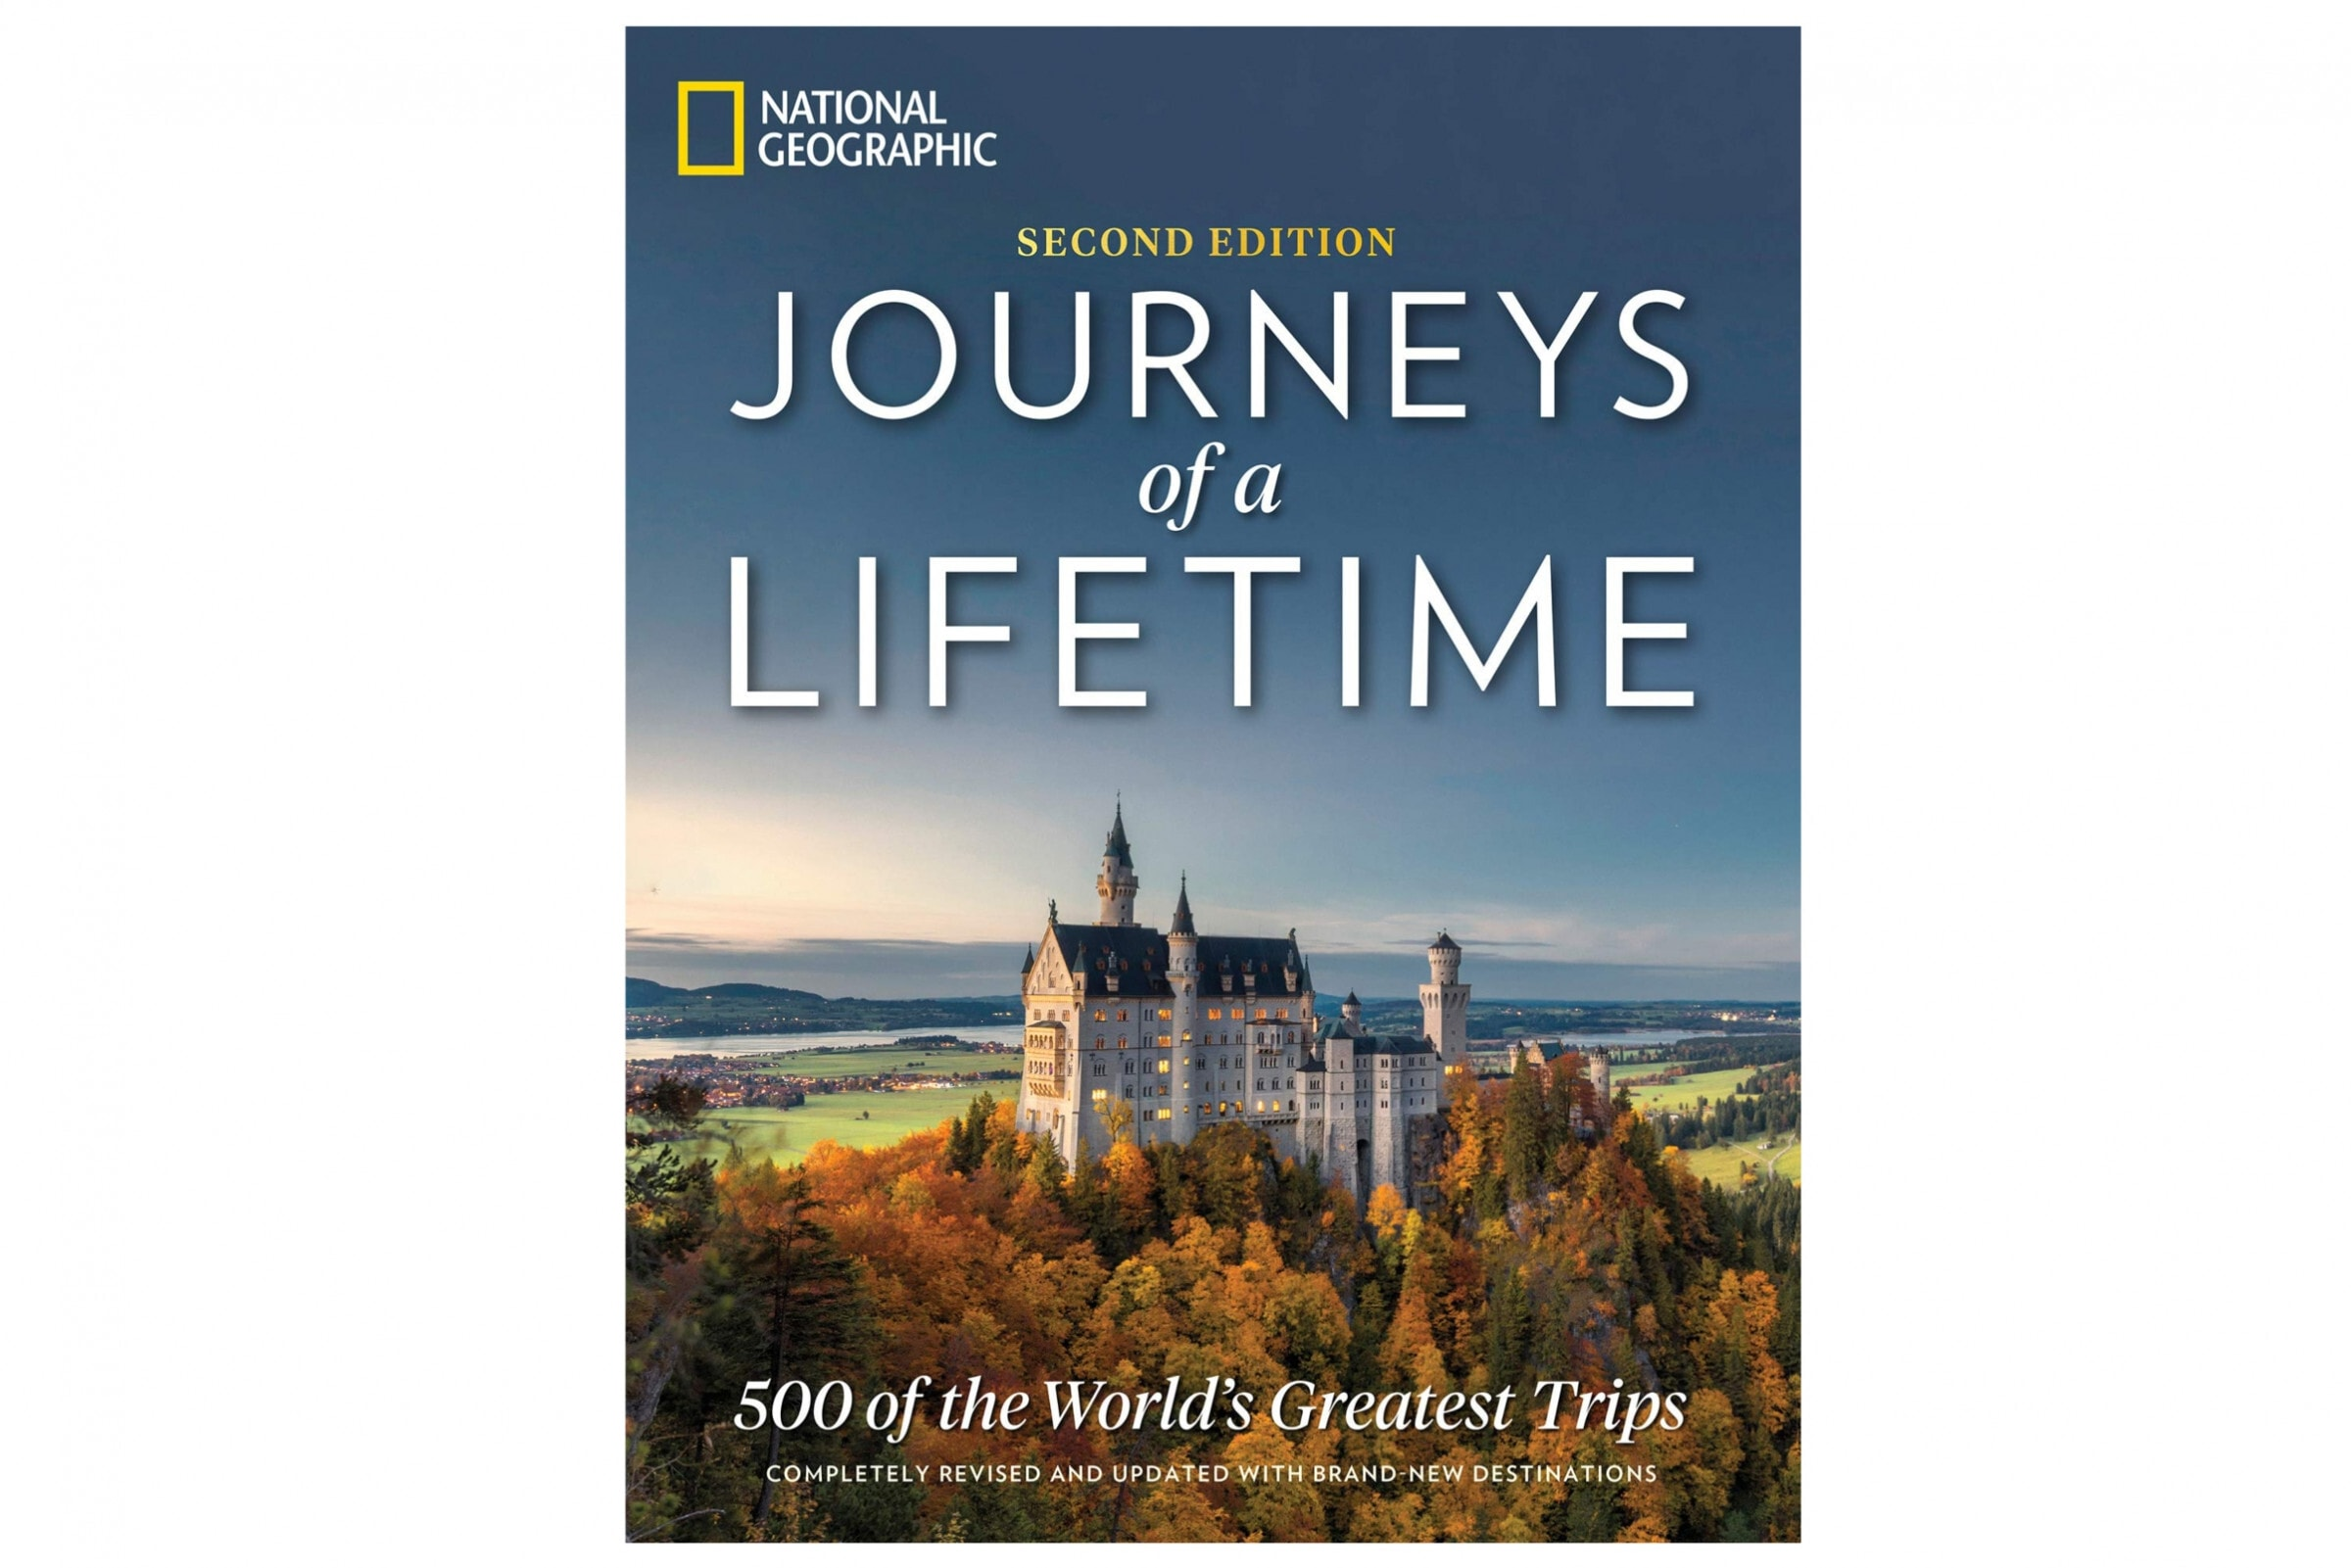 Books to read to kick your New Year off right 'Journeys of a Lifetime'